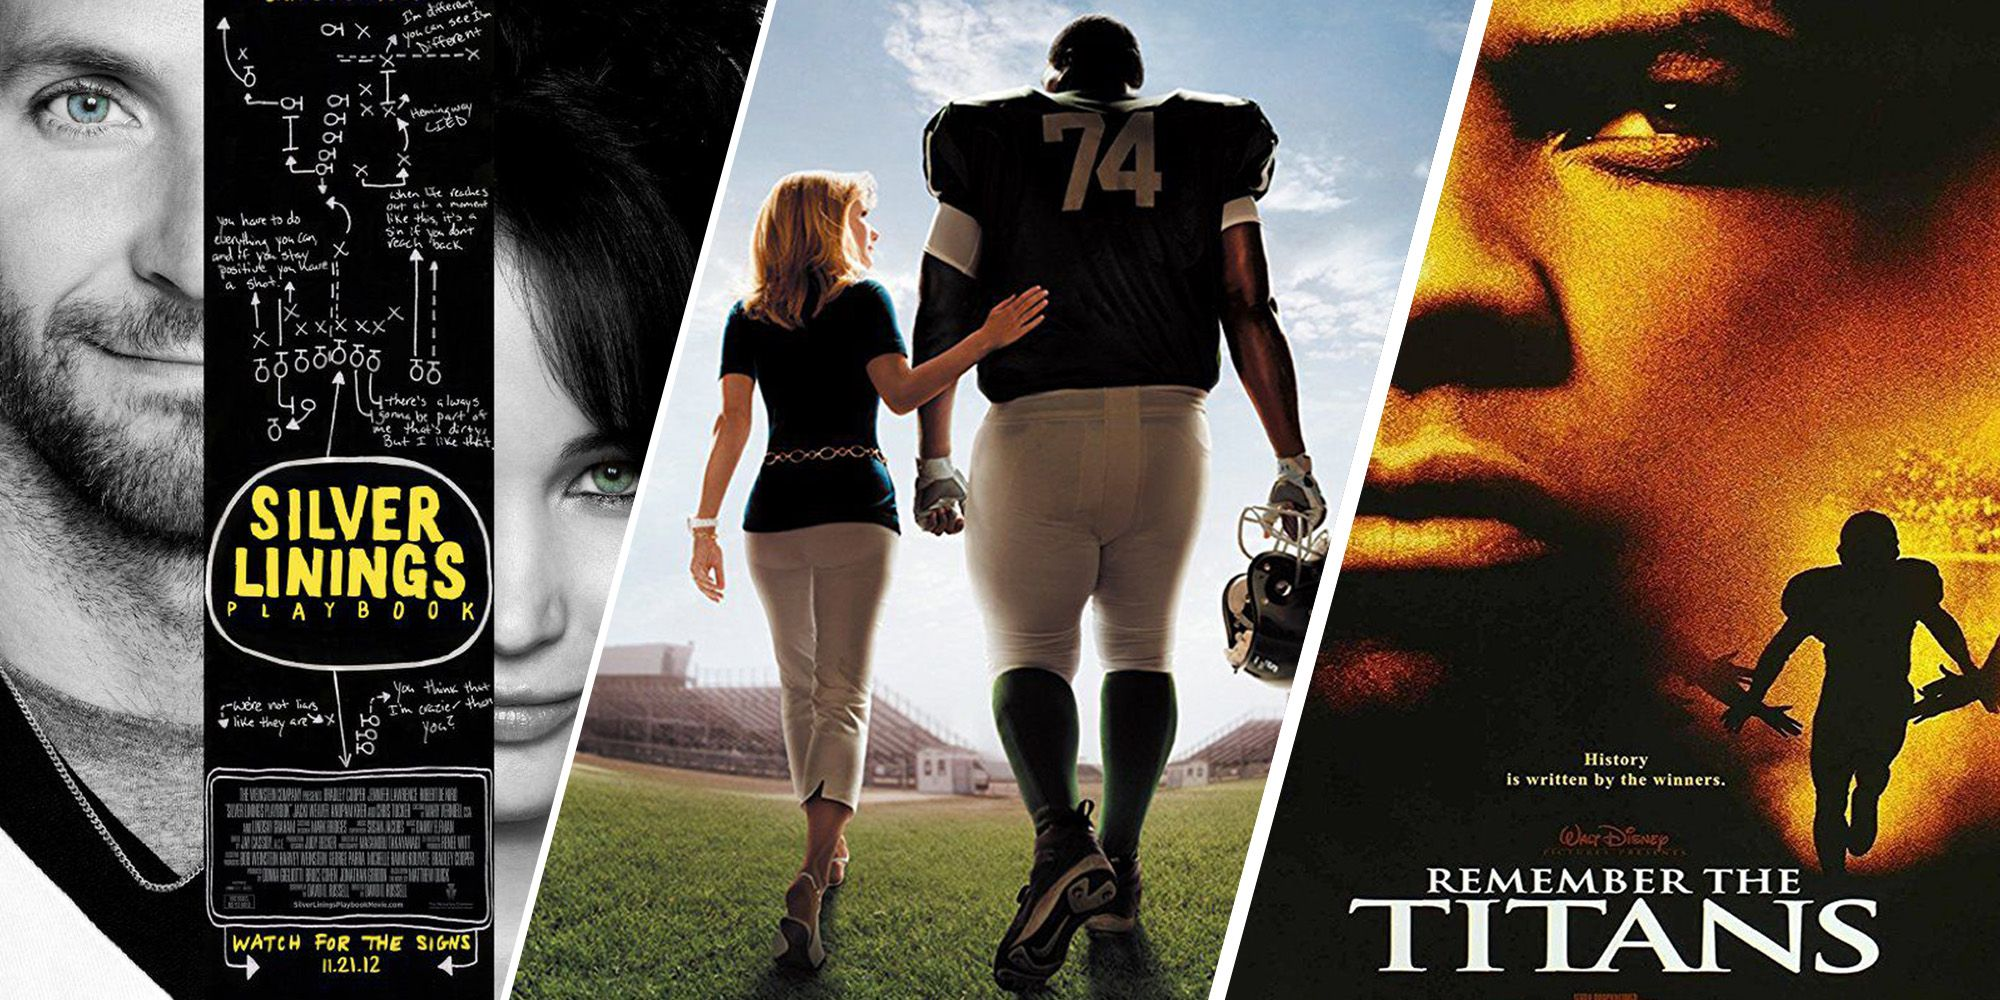 All Family Movies 2017 20 best football movies ever - greatest classic american